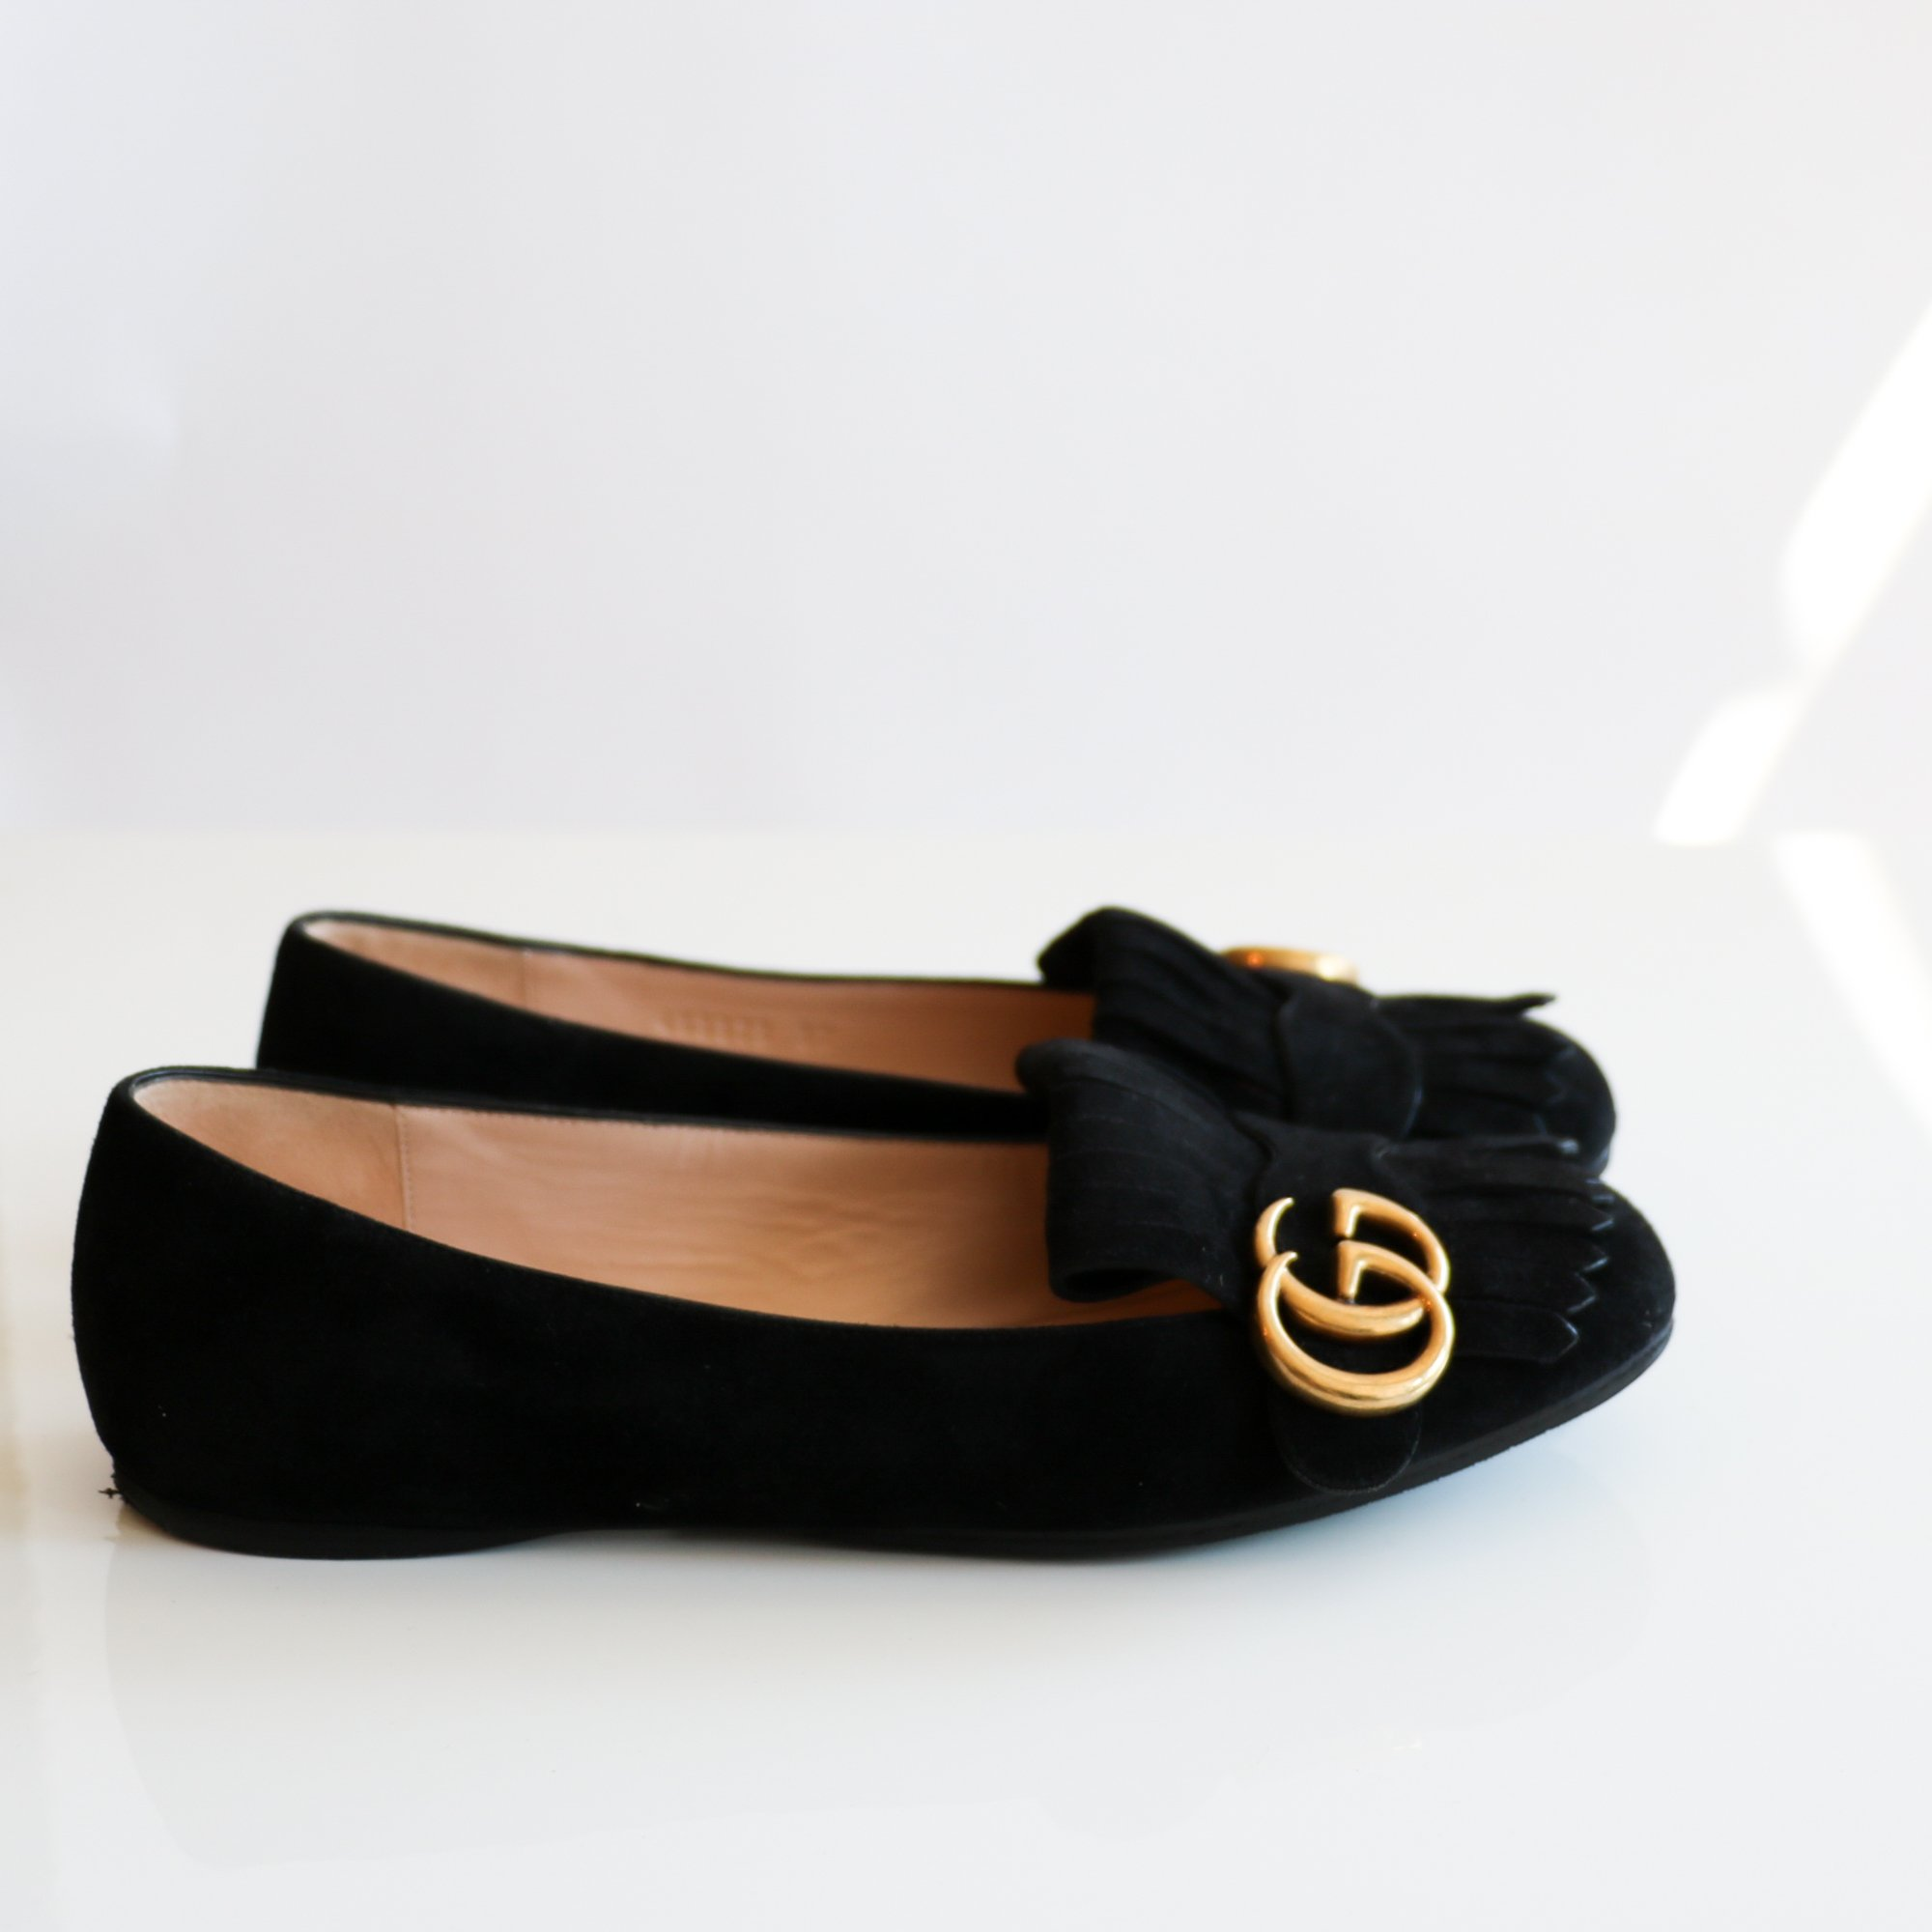 Pre-loved] Gucci Marmont Loafers